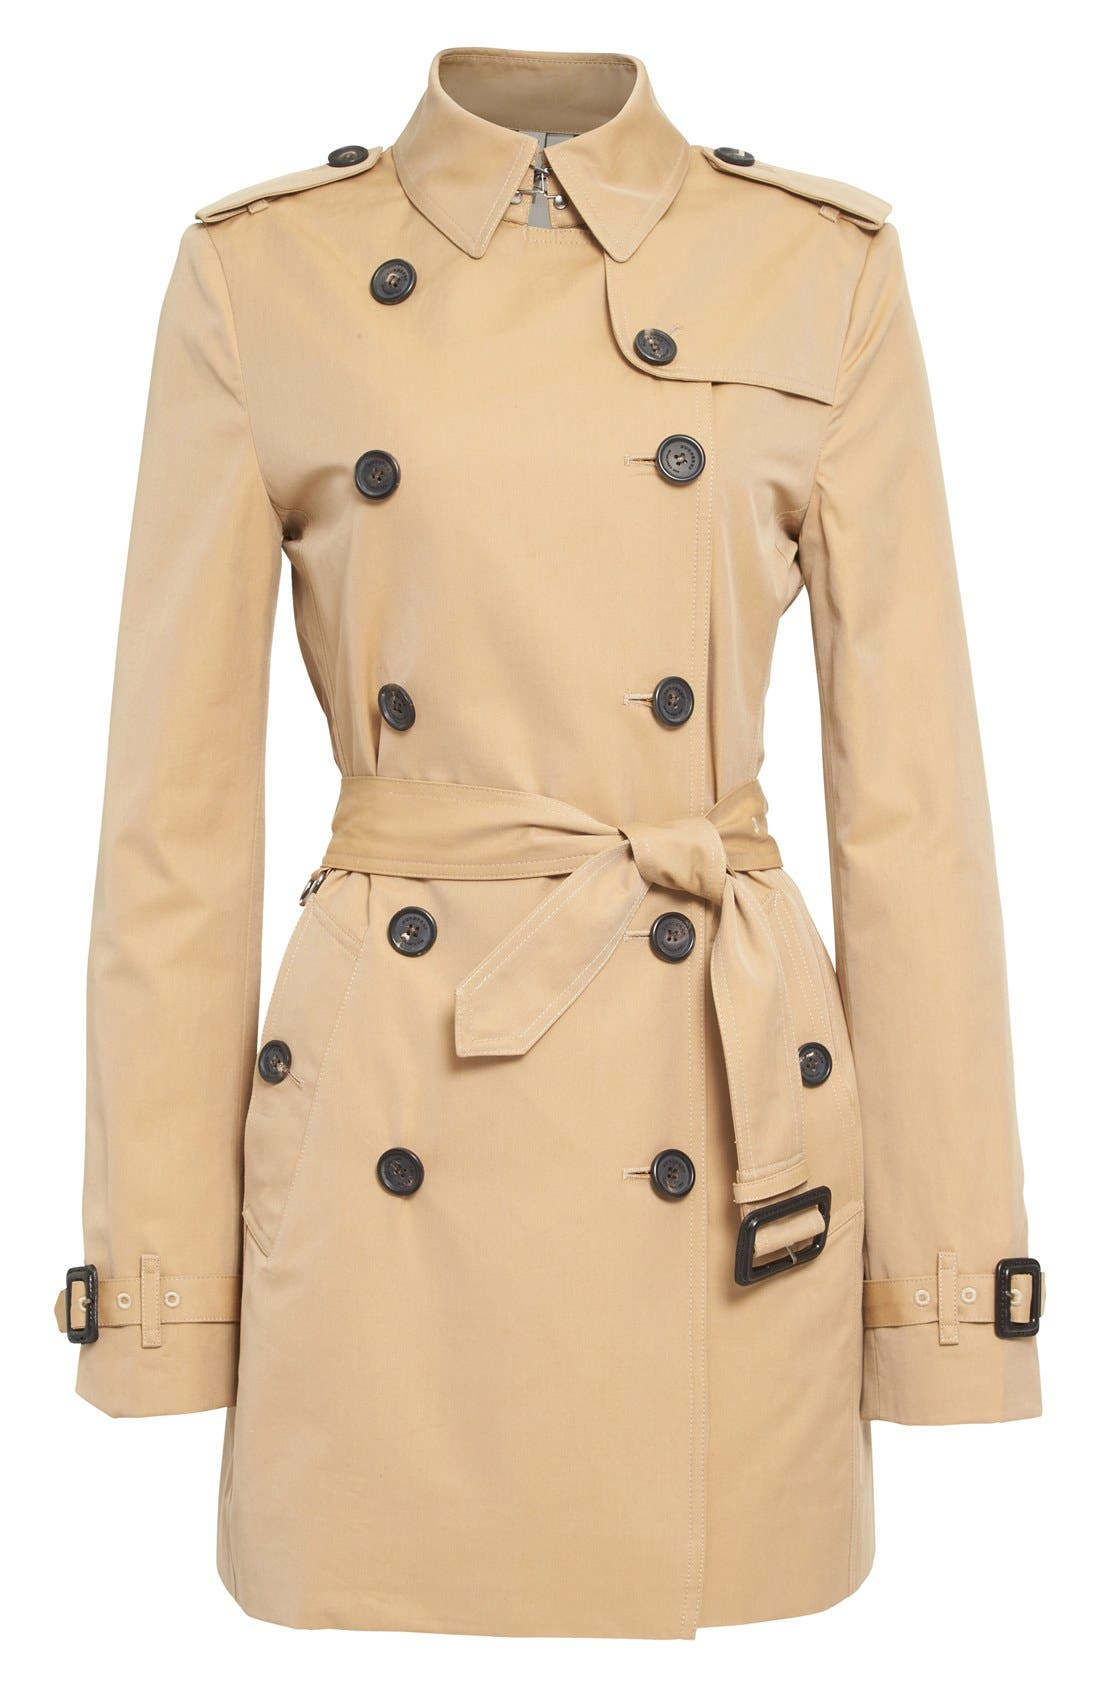 Kensington Short Trench Coat,                             Alternate thumbnail 10, color,                             HONEY